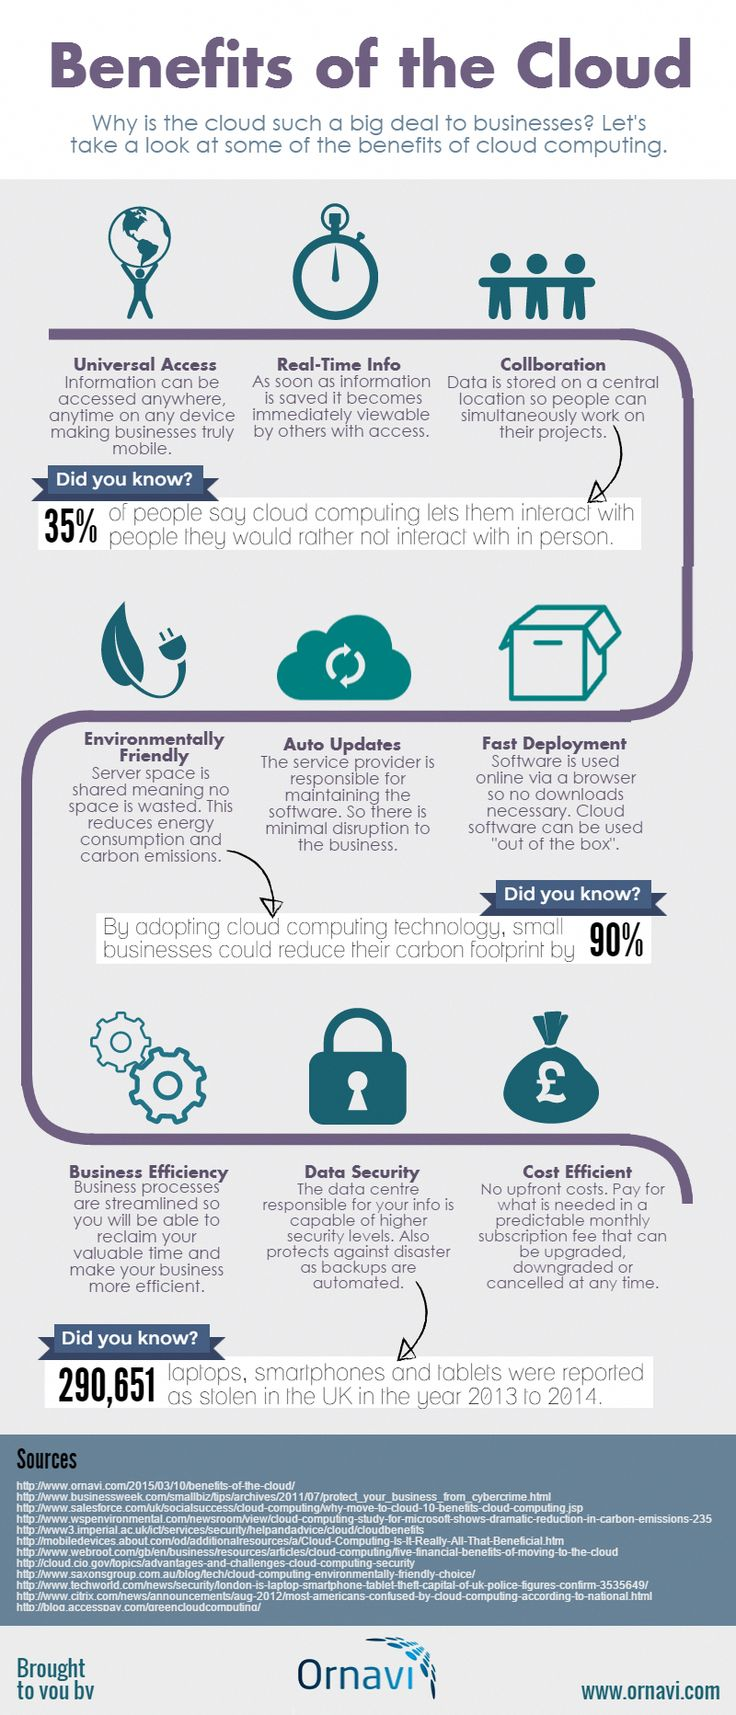 Ornavi Infographic. Benefits of the Cloud all the